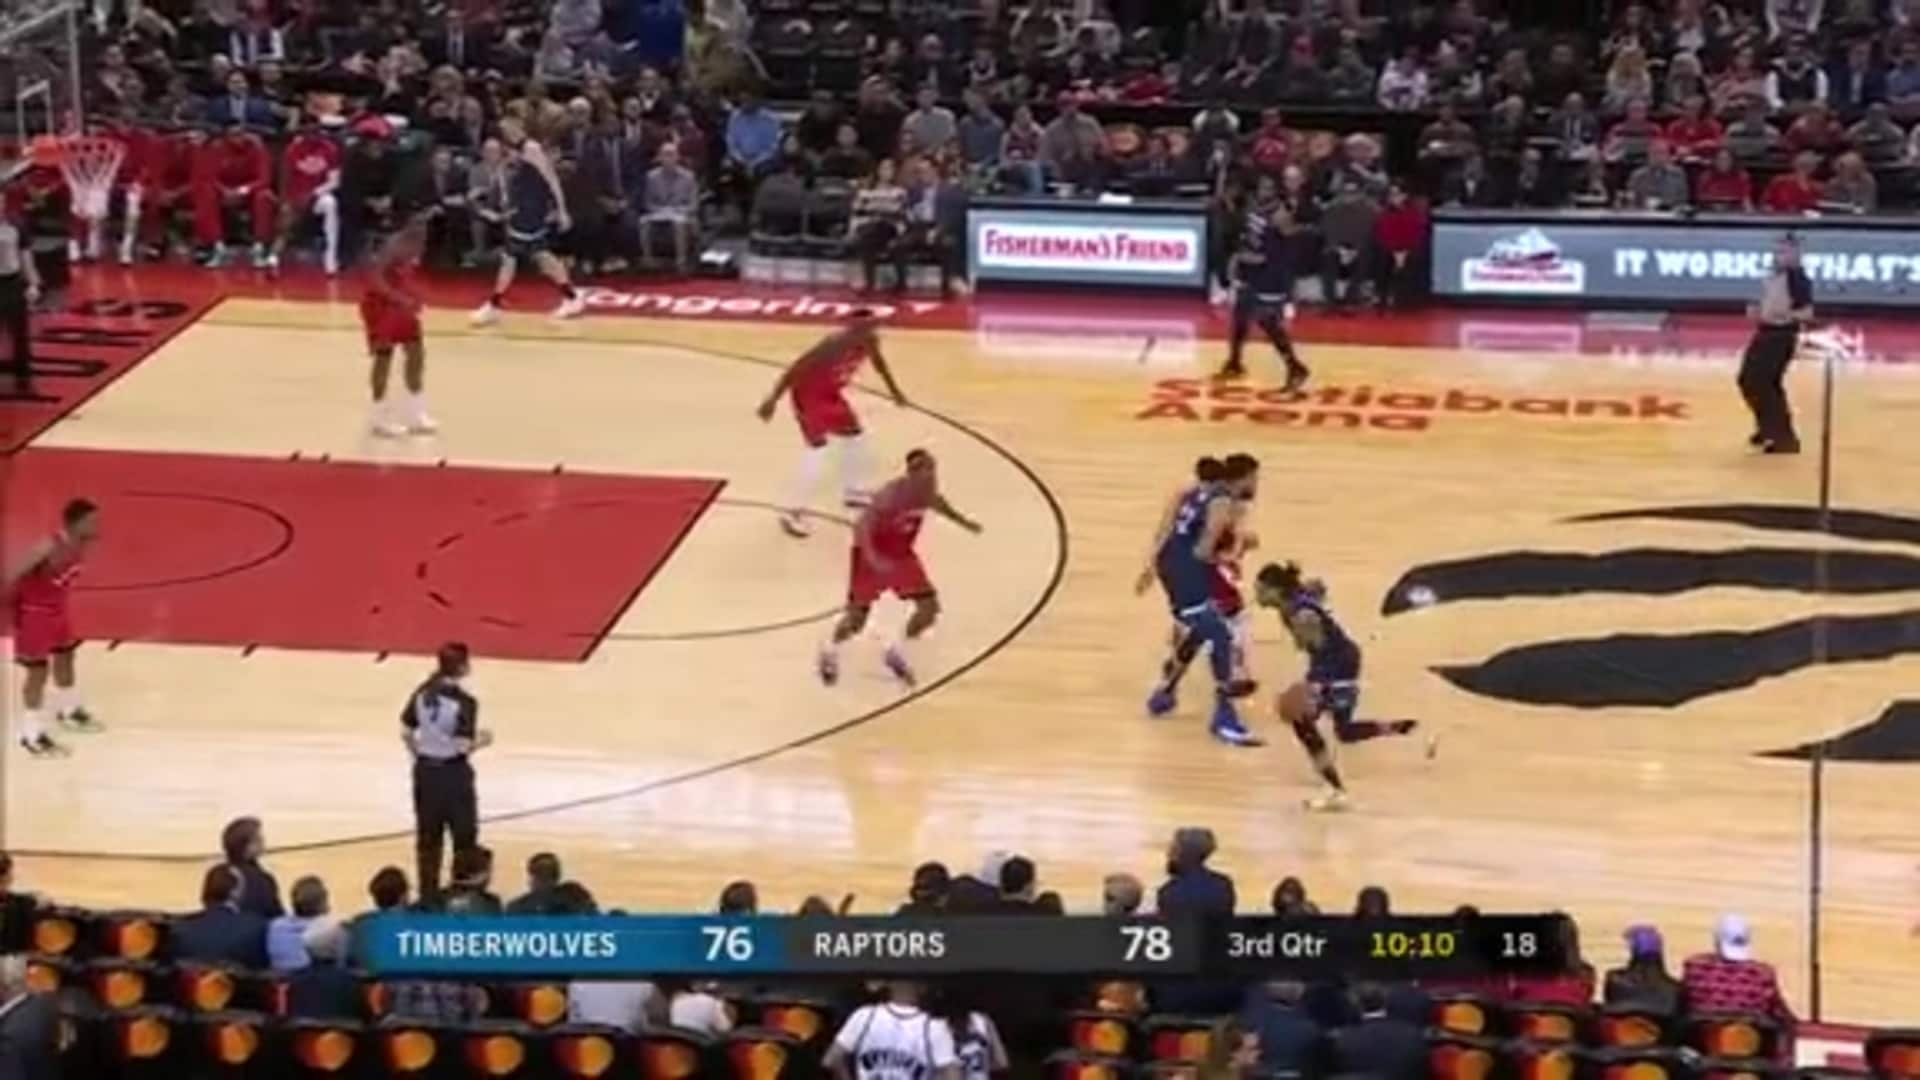 D'Angelo Russell Records 22 Points, 5 Assists In Timberwolves Debut (2.10.20)